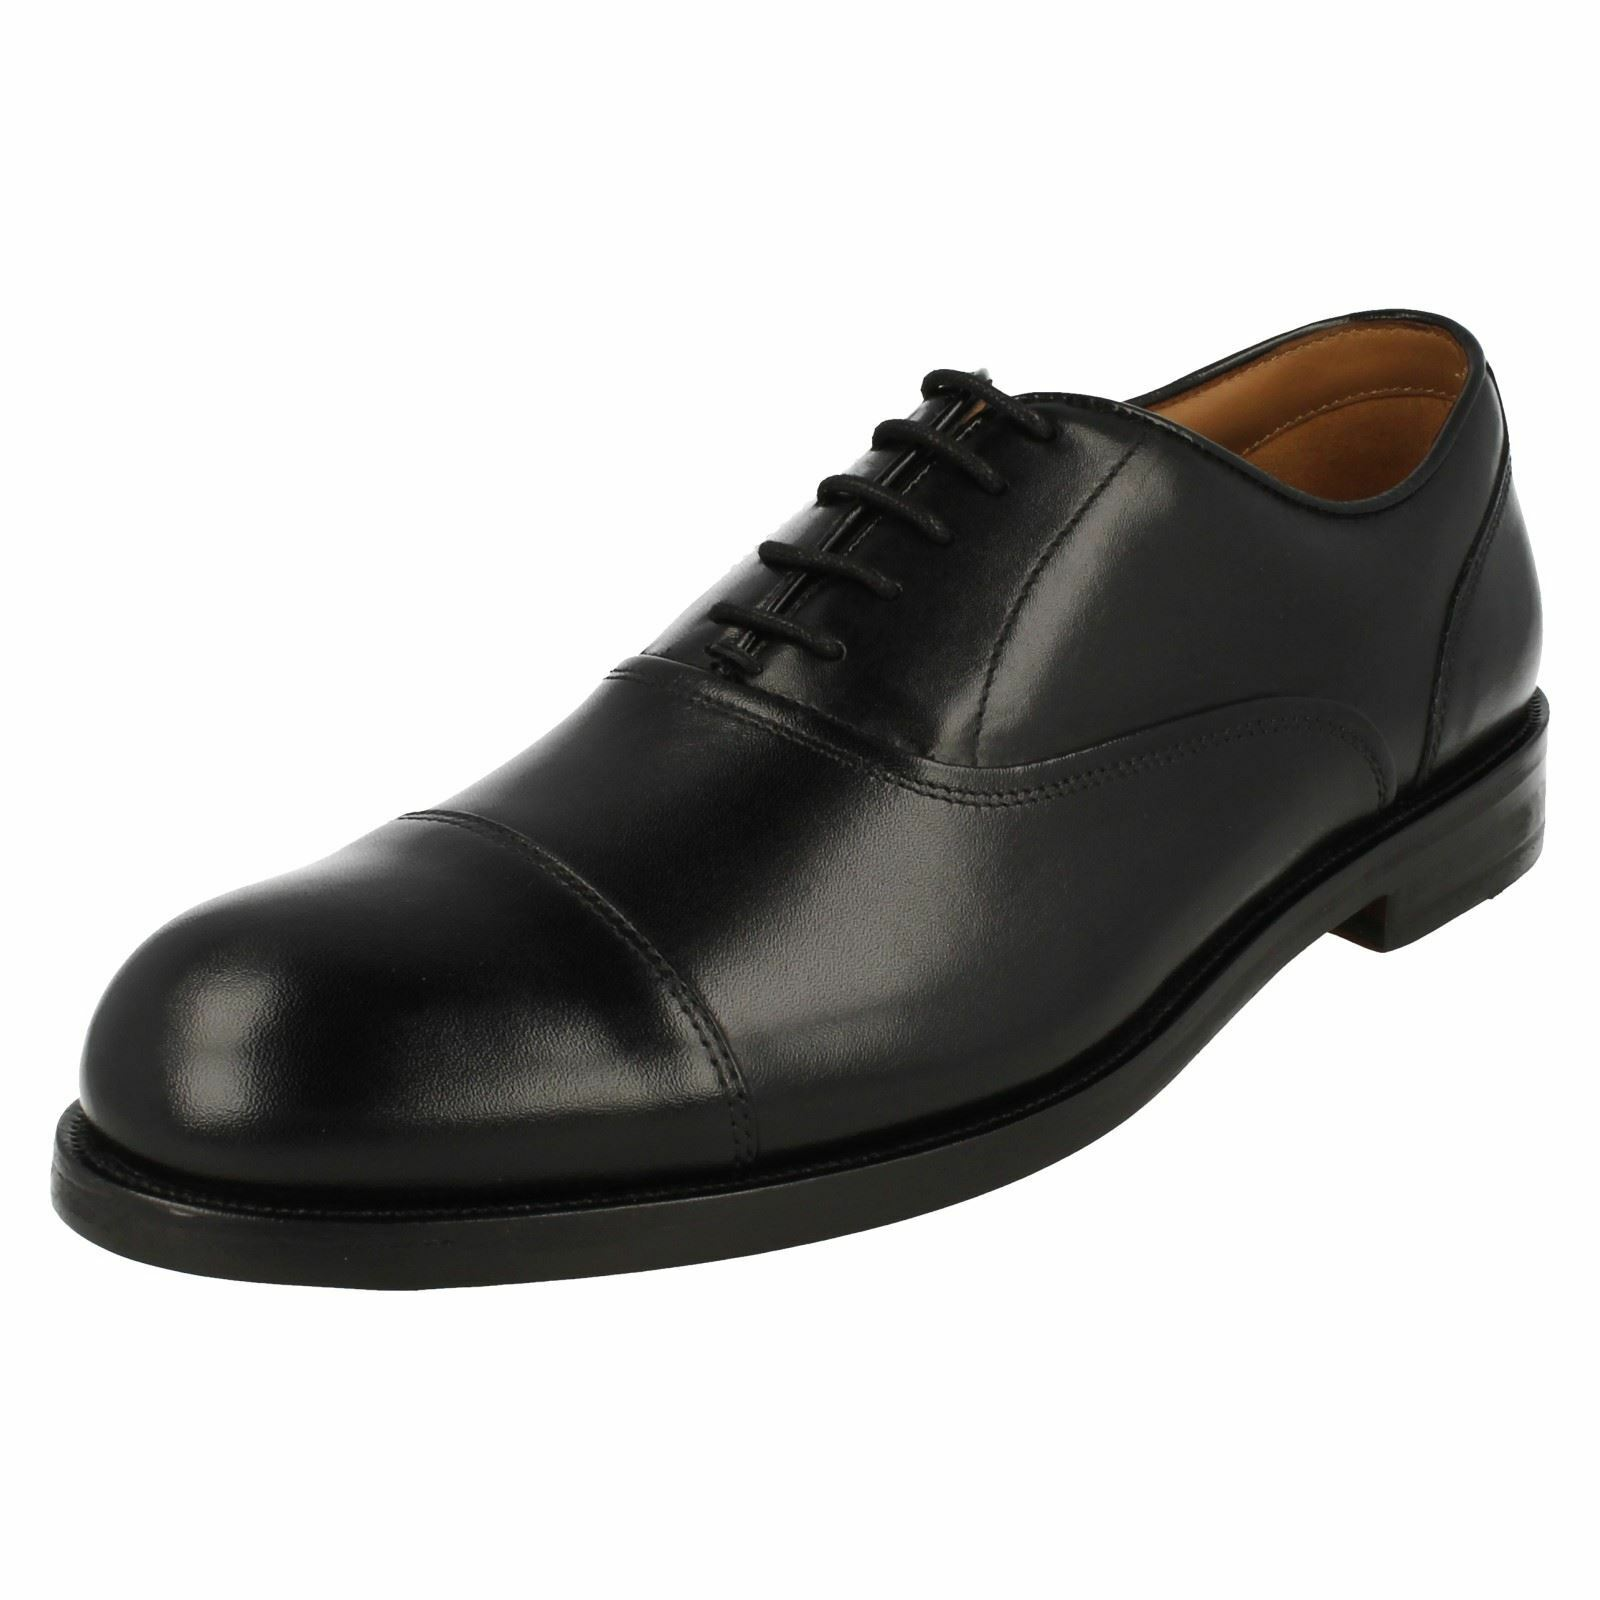 Mens Clarks Coling Boss Formal Oxford Style shoes